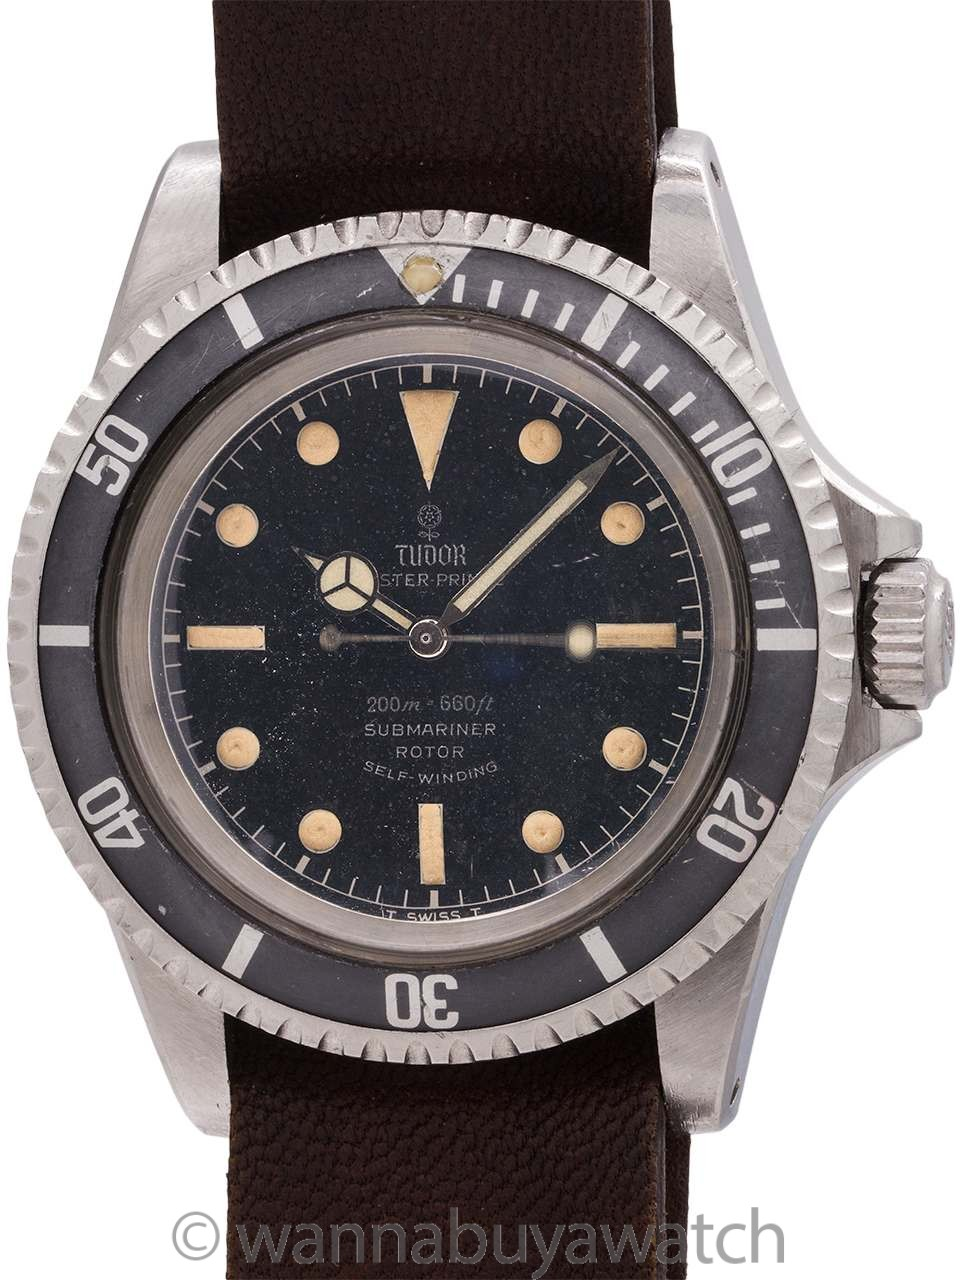 Tudor ref 7928 Submariner Gilt circa 1965 Exceptional!